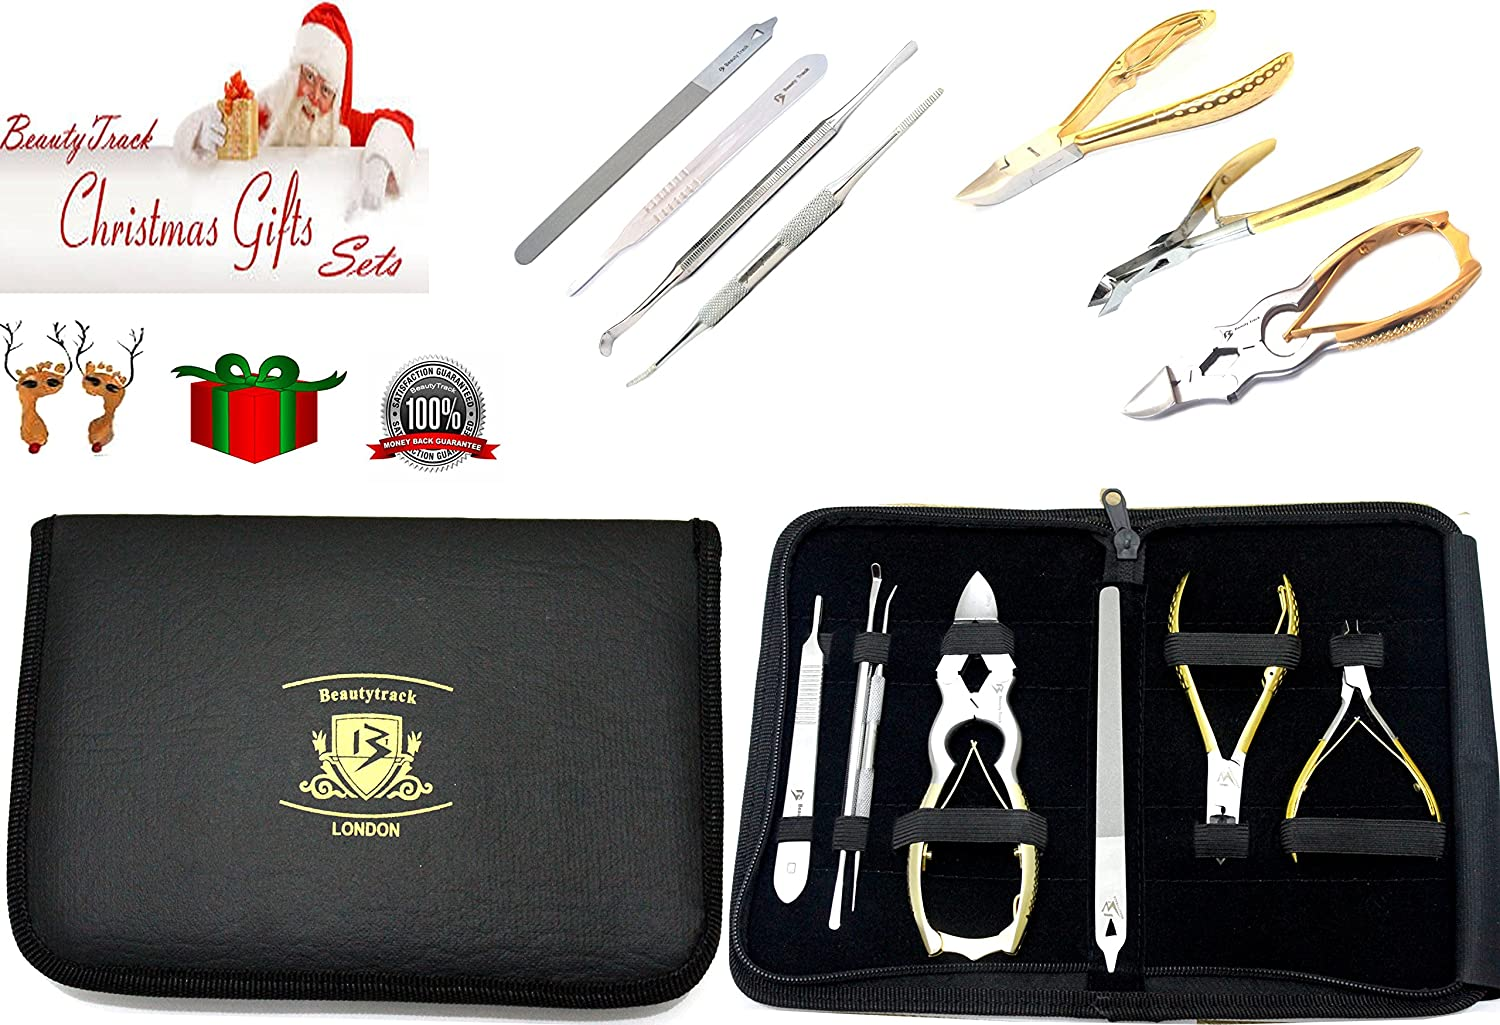 BeautyTrack Toenail Clipper Set - Chiropody Pedicure 7Pc Gold Colour Set - Nail Nipper Podiatry Clippers - Nail Files Brand New UK Stock Best For Pedicure Manicure Chiropodist (Christmas Special)